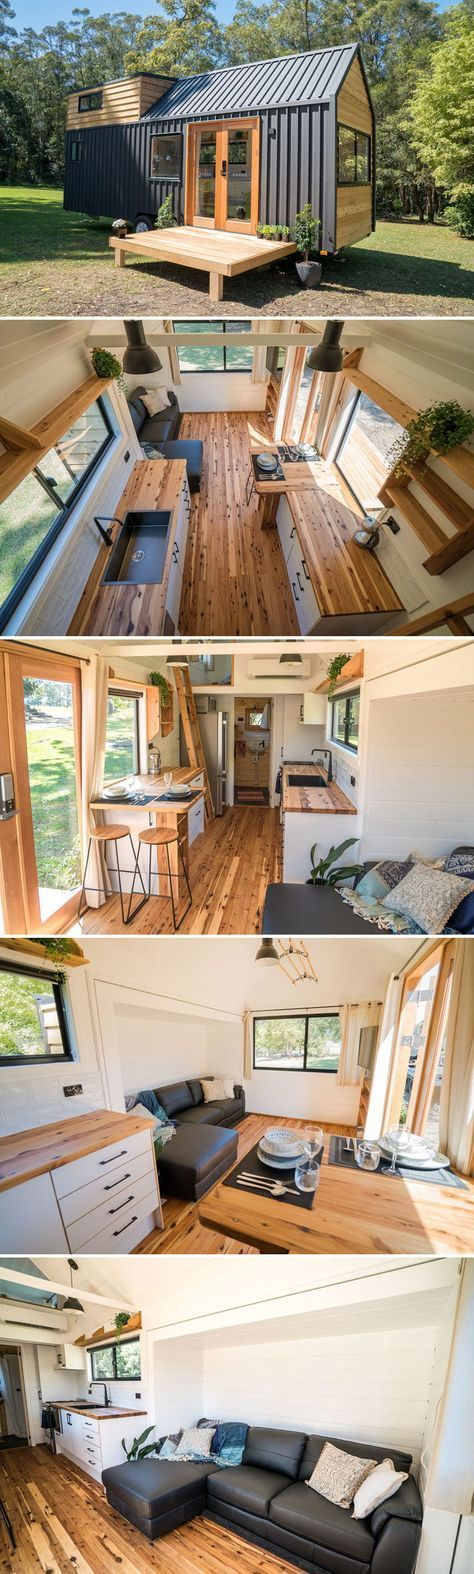 Sojourner by Häuslein Tiny House Co #tinylivingideas